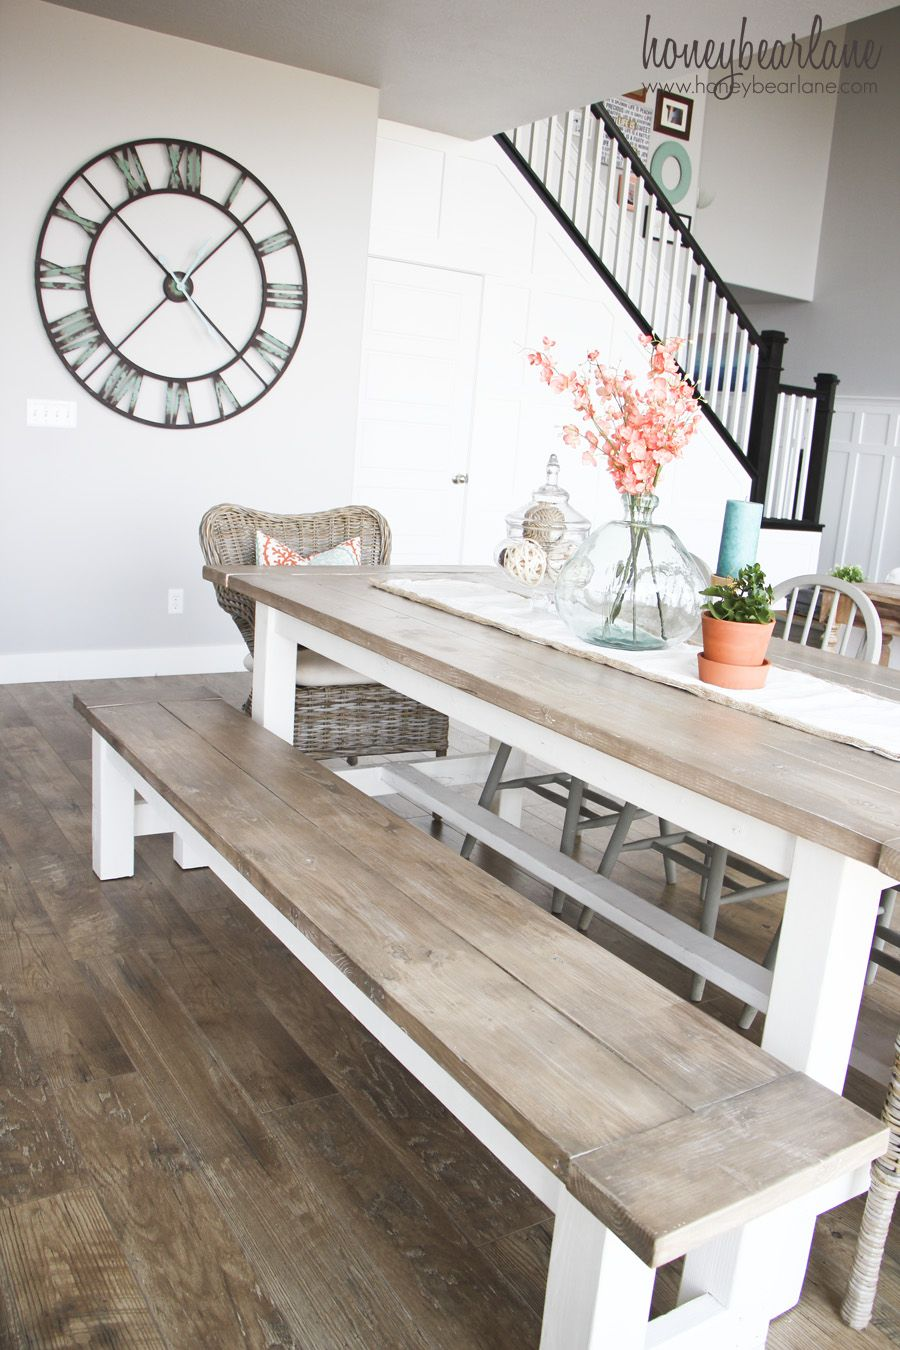 Sensational This Diy Farmhouse Table Was Not As Scary To Build As I Dailytribune Chair Design For Home Dailytribuneorg